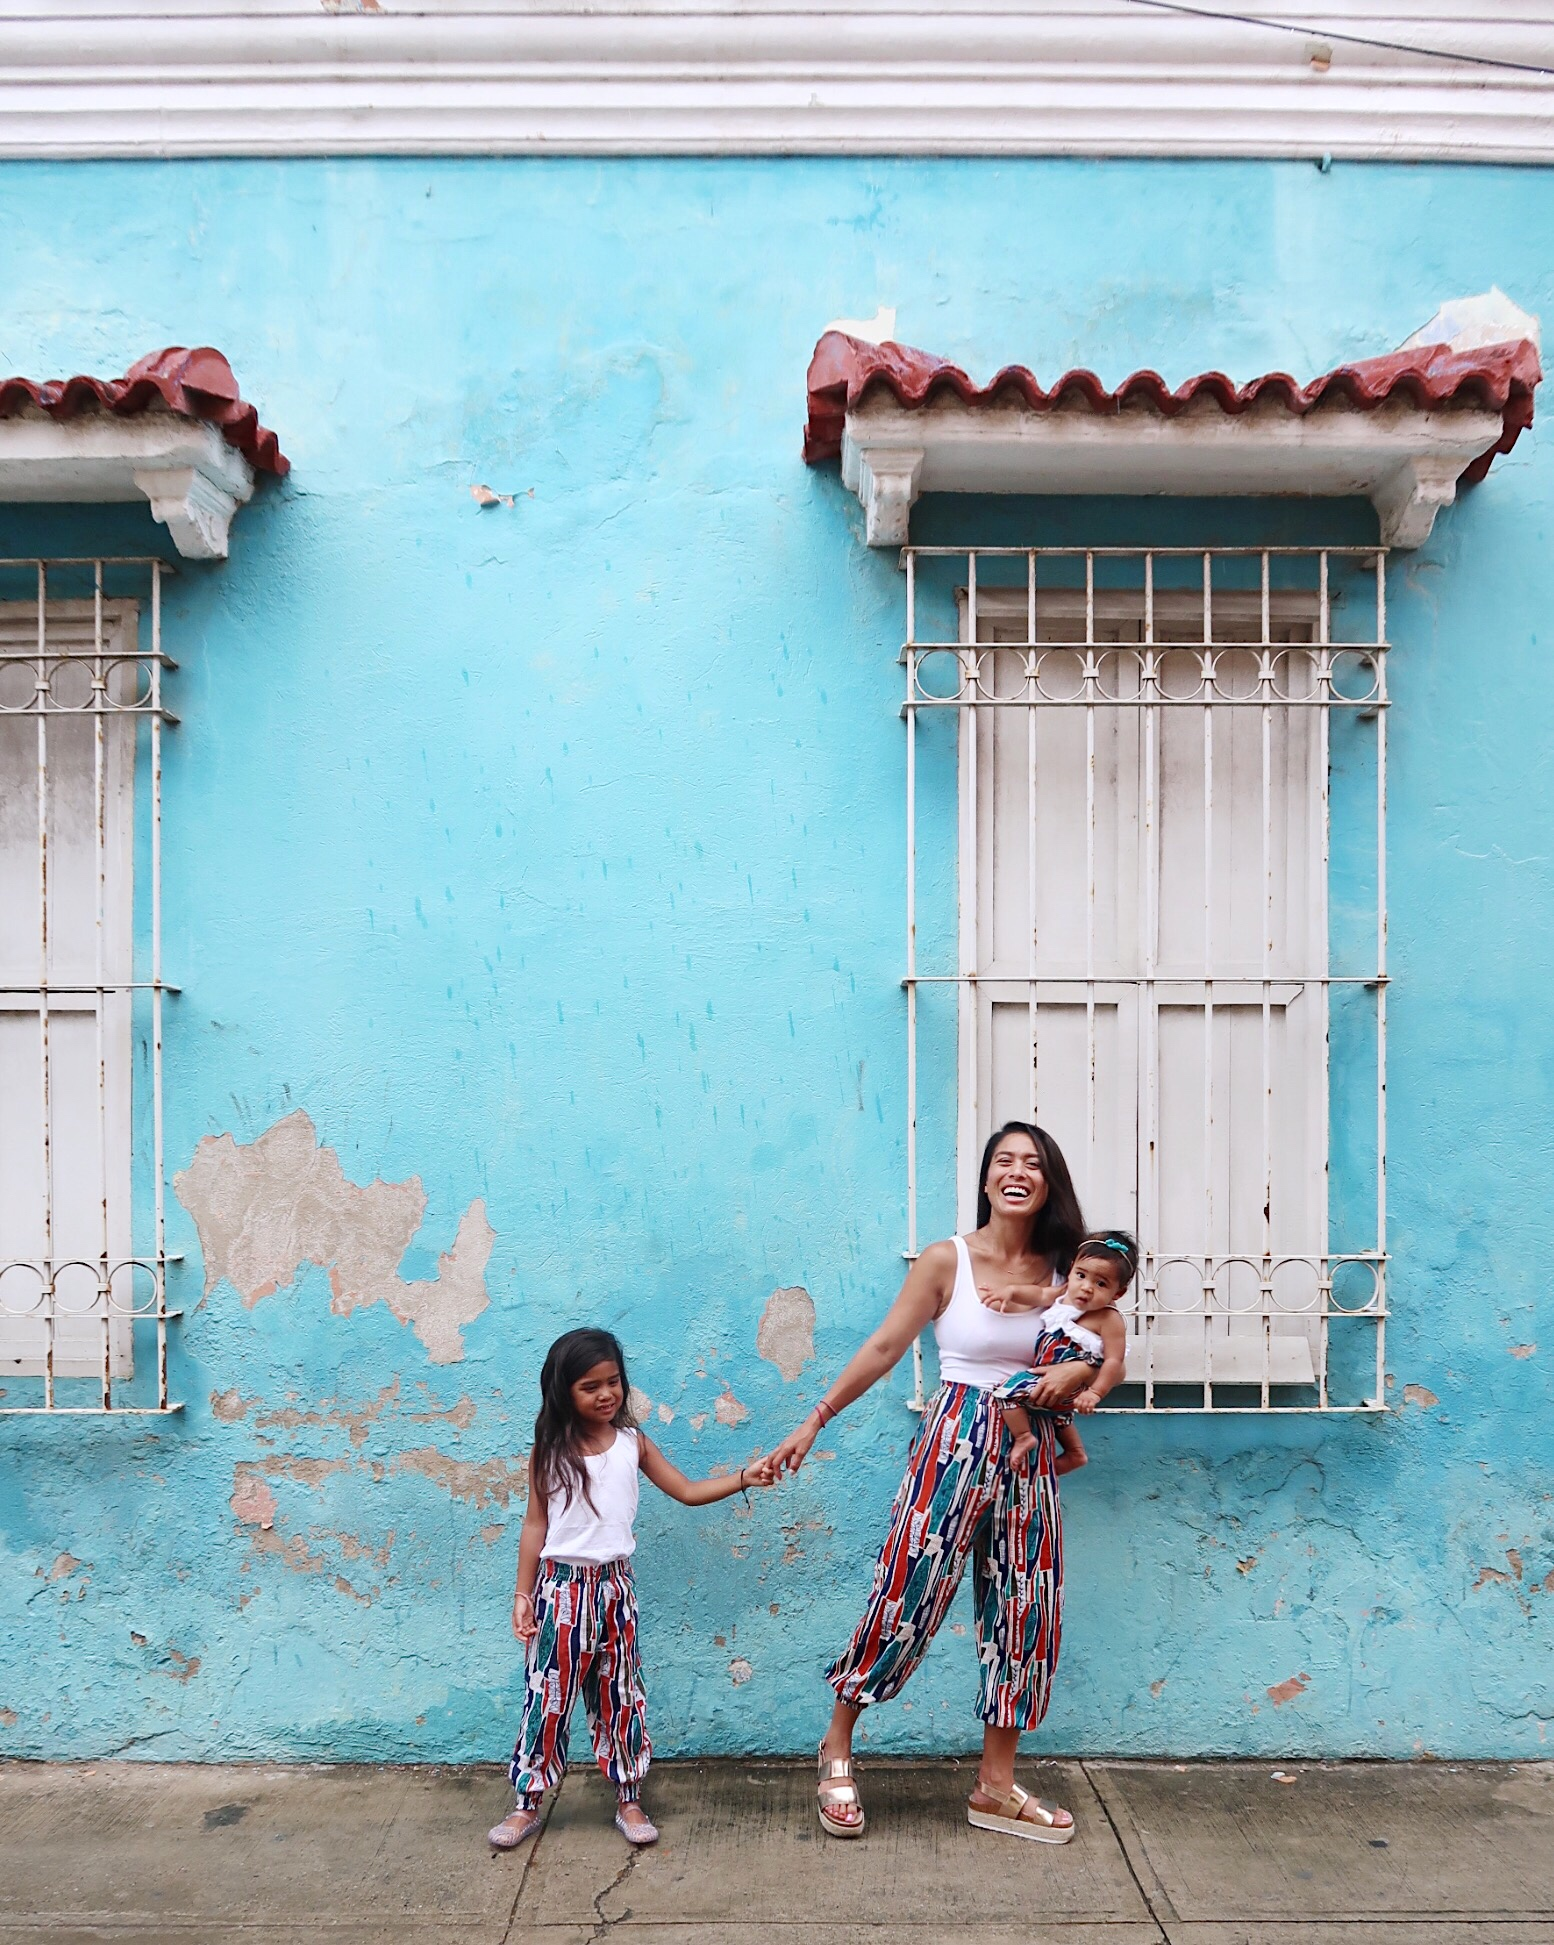 Twinning in the streets of Cartagena, Colombia.